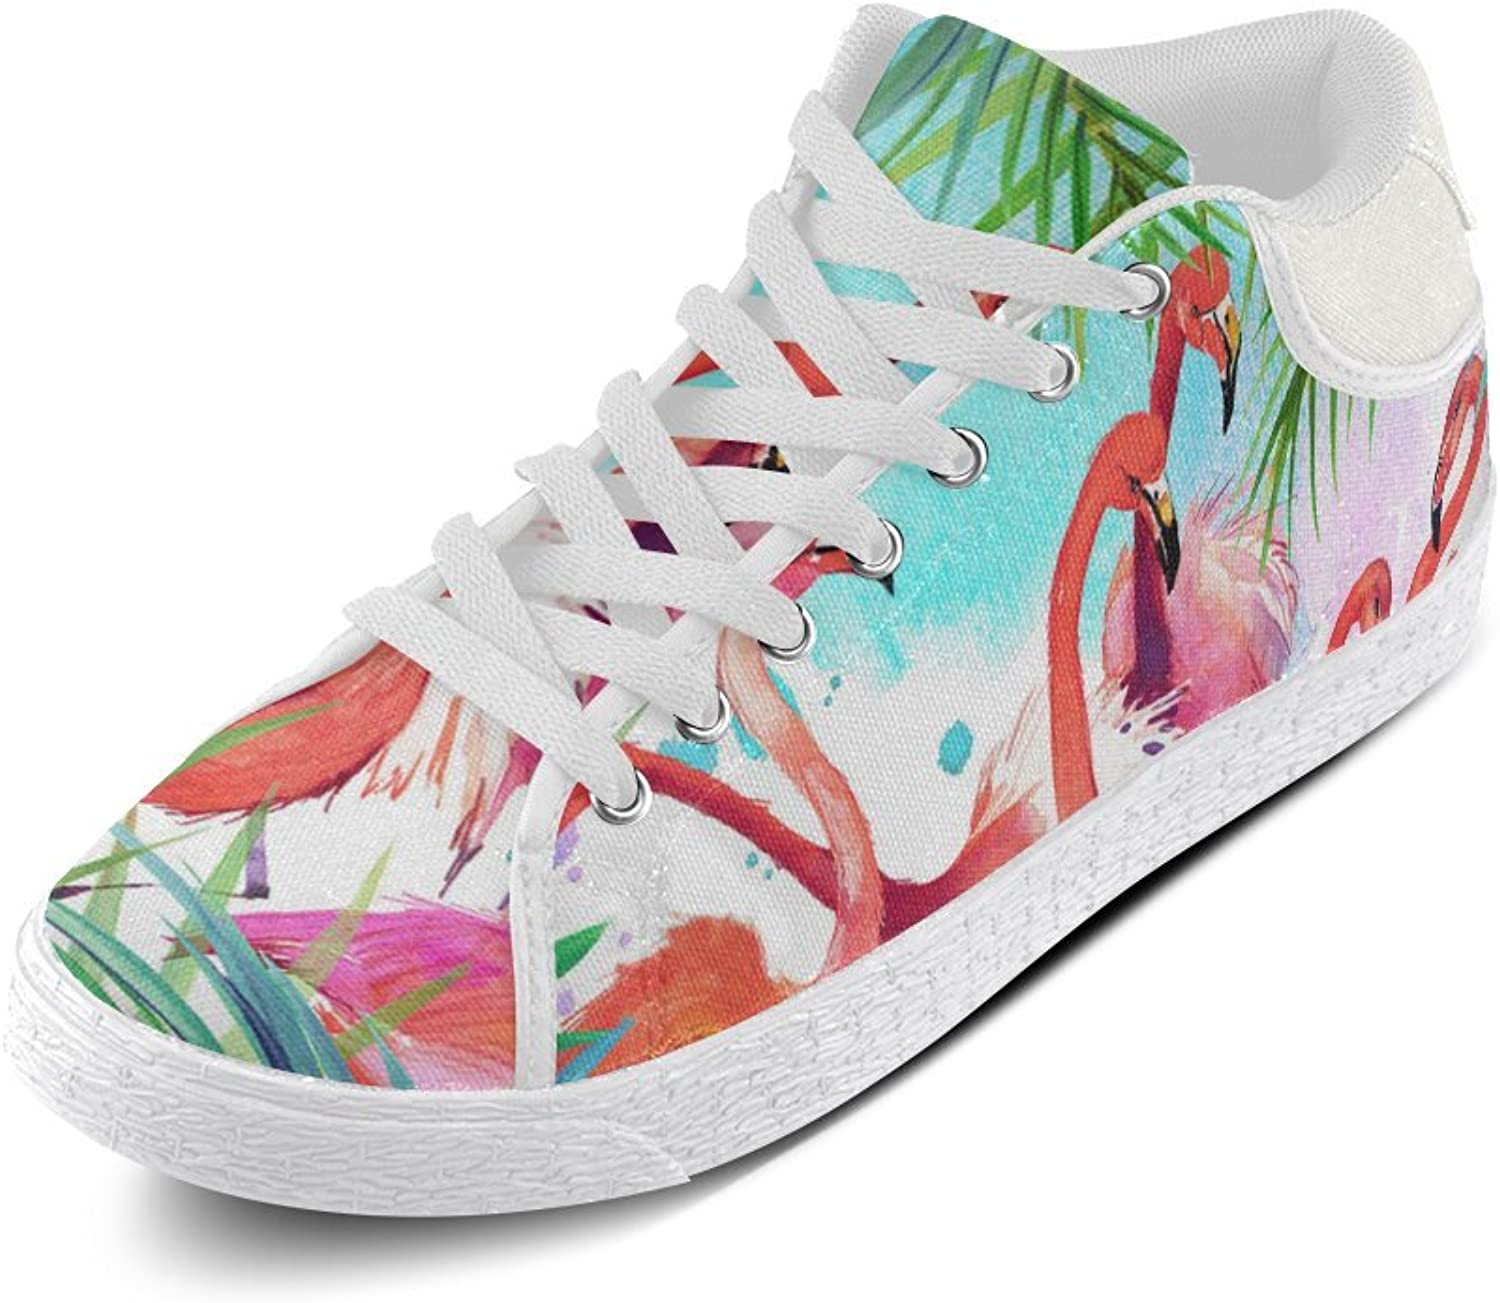 CERLYRUAN Pink Flamingos and Palm Leaves Canvas Chukka Canvas Women's shoes